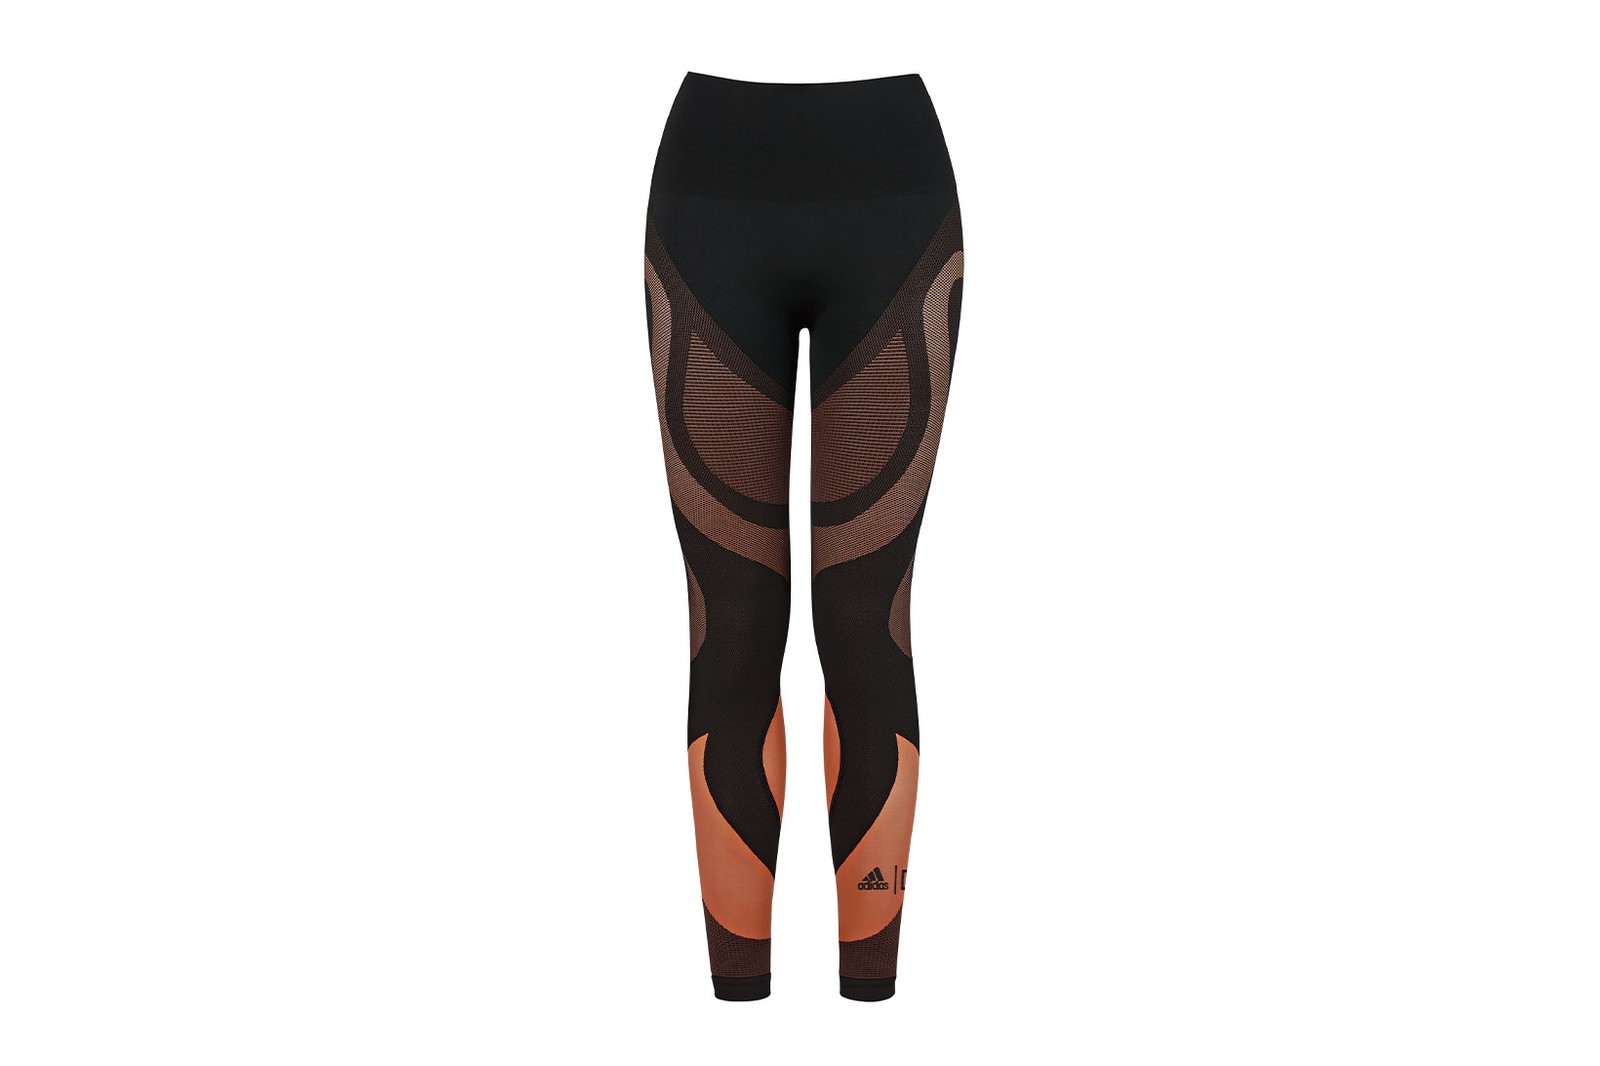 wolford adidas activewear sheer motion seamless performance collaboration gym workout tops leggings